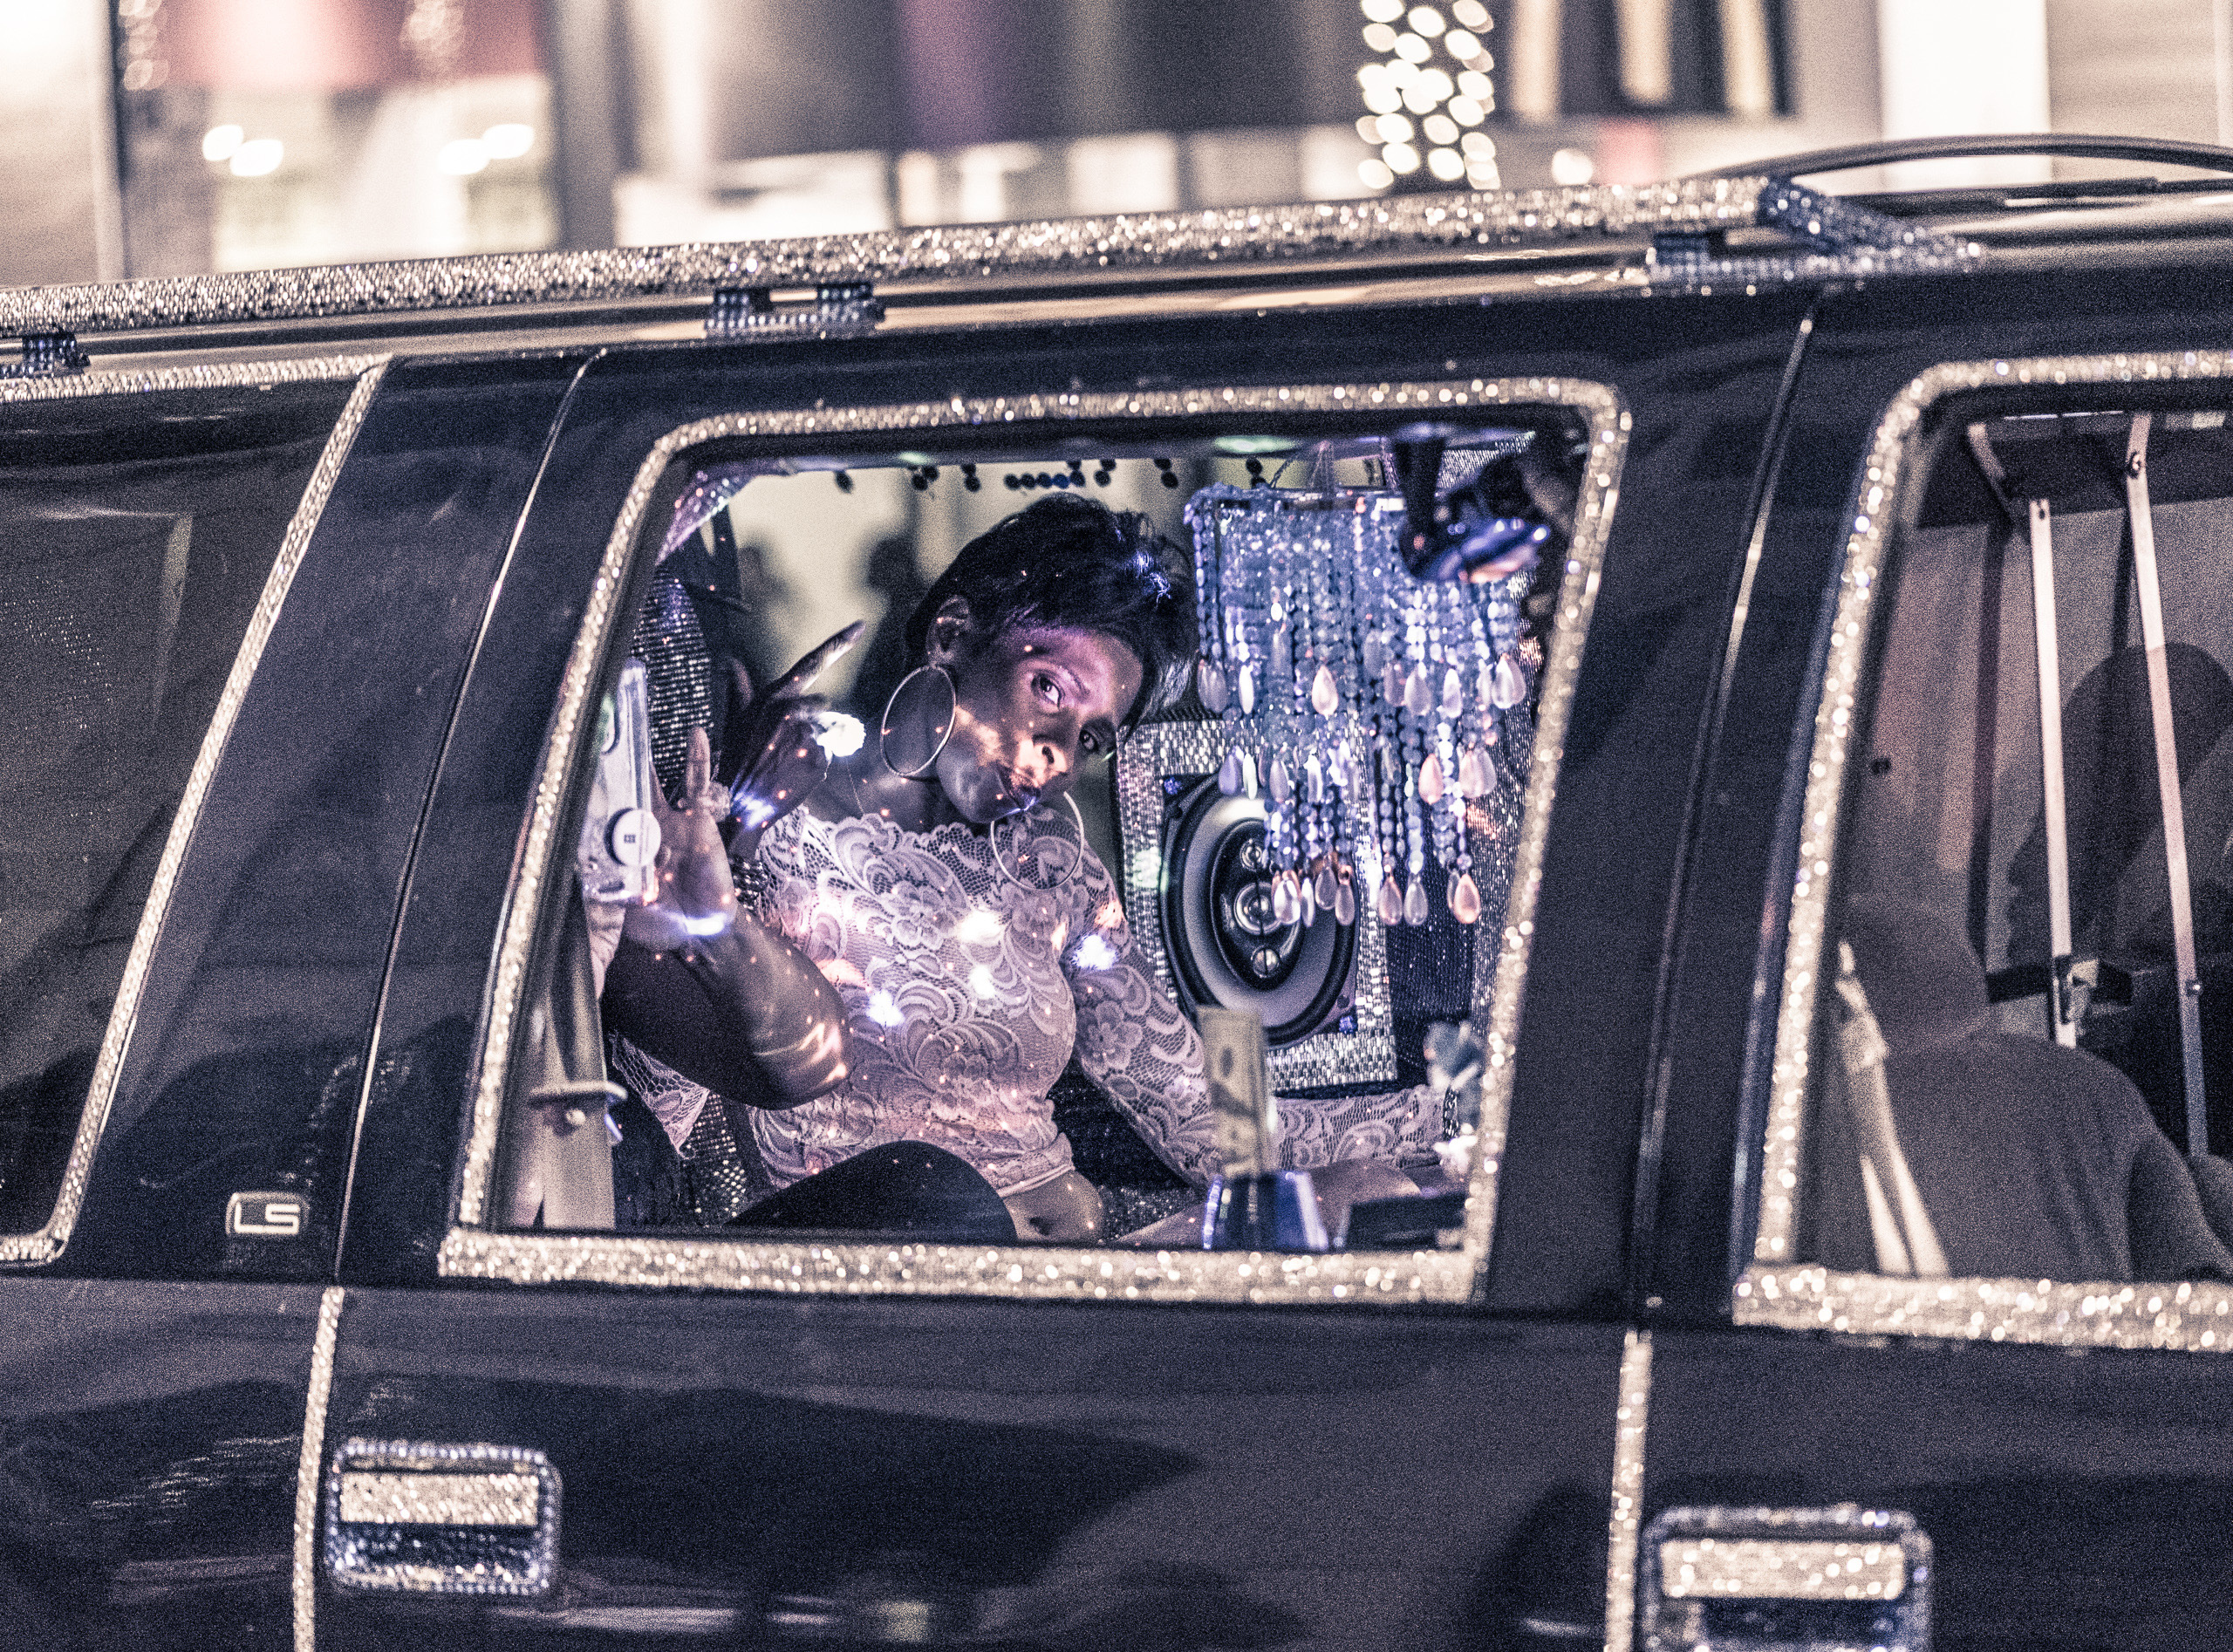 an elegant woman rides in a sparkling, bedazzled limo